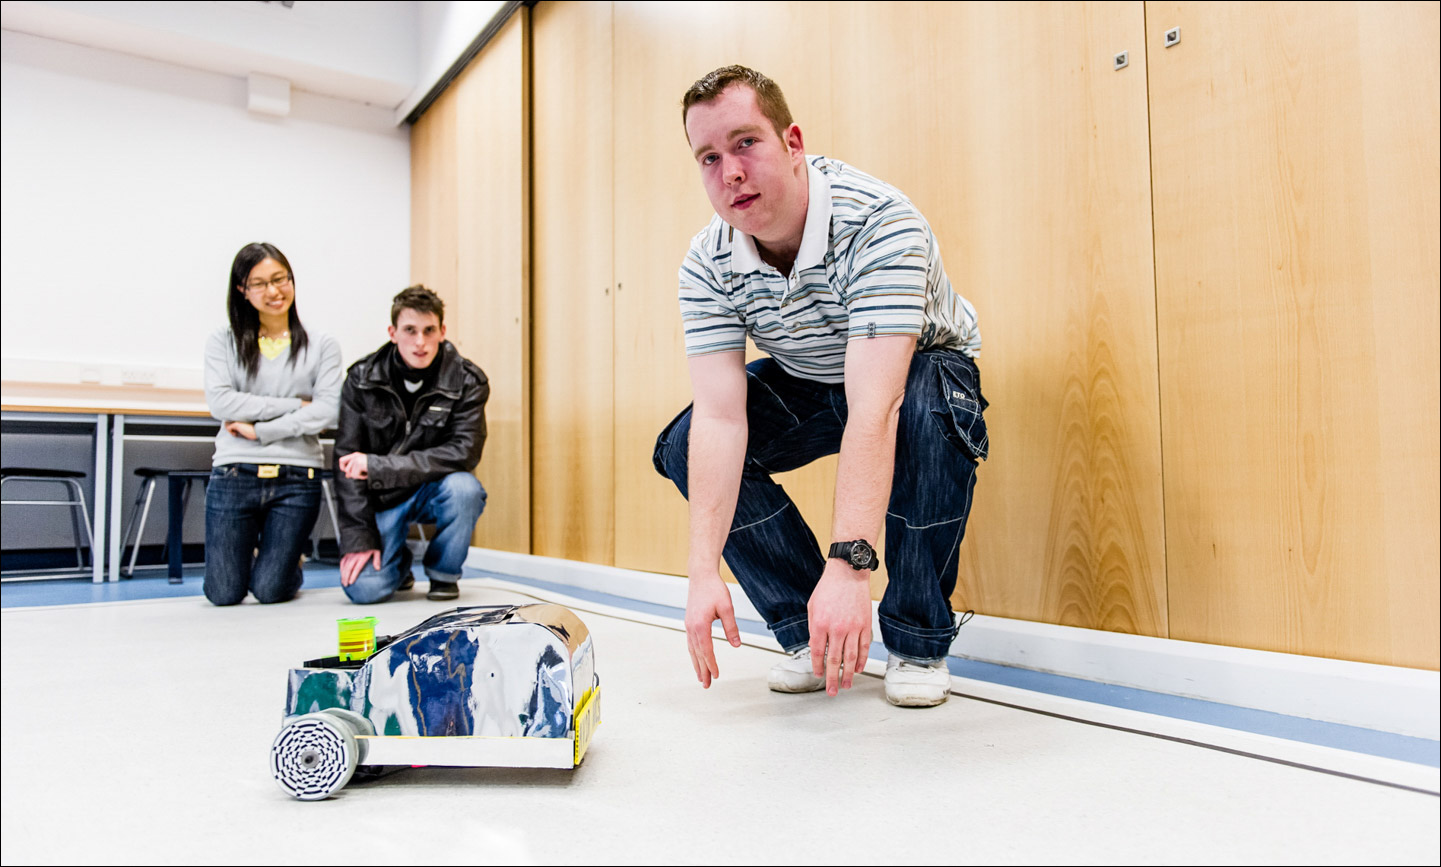 Engineering Robots Glasgow University Paul Hampton Photographer